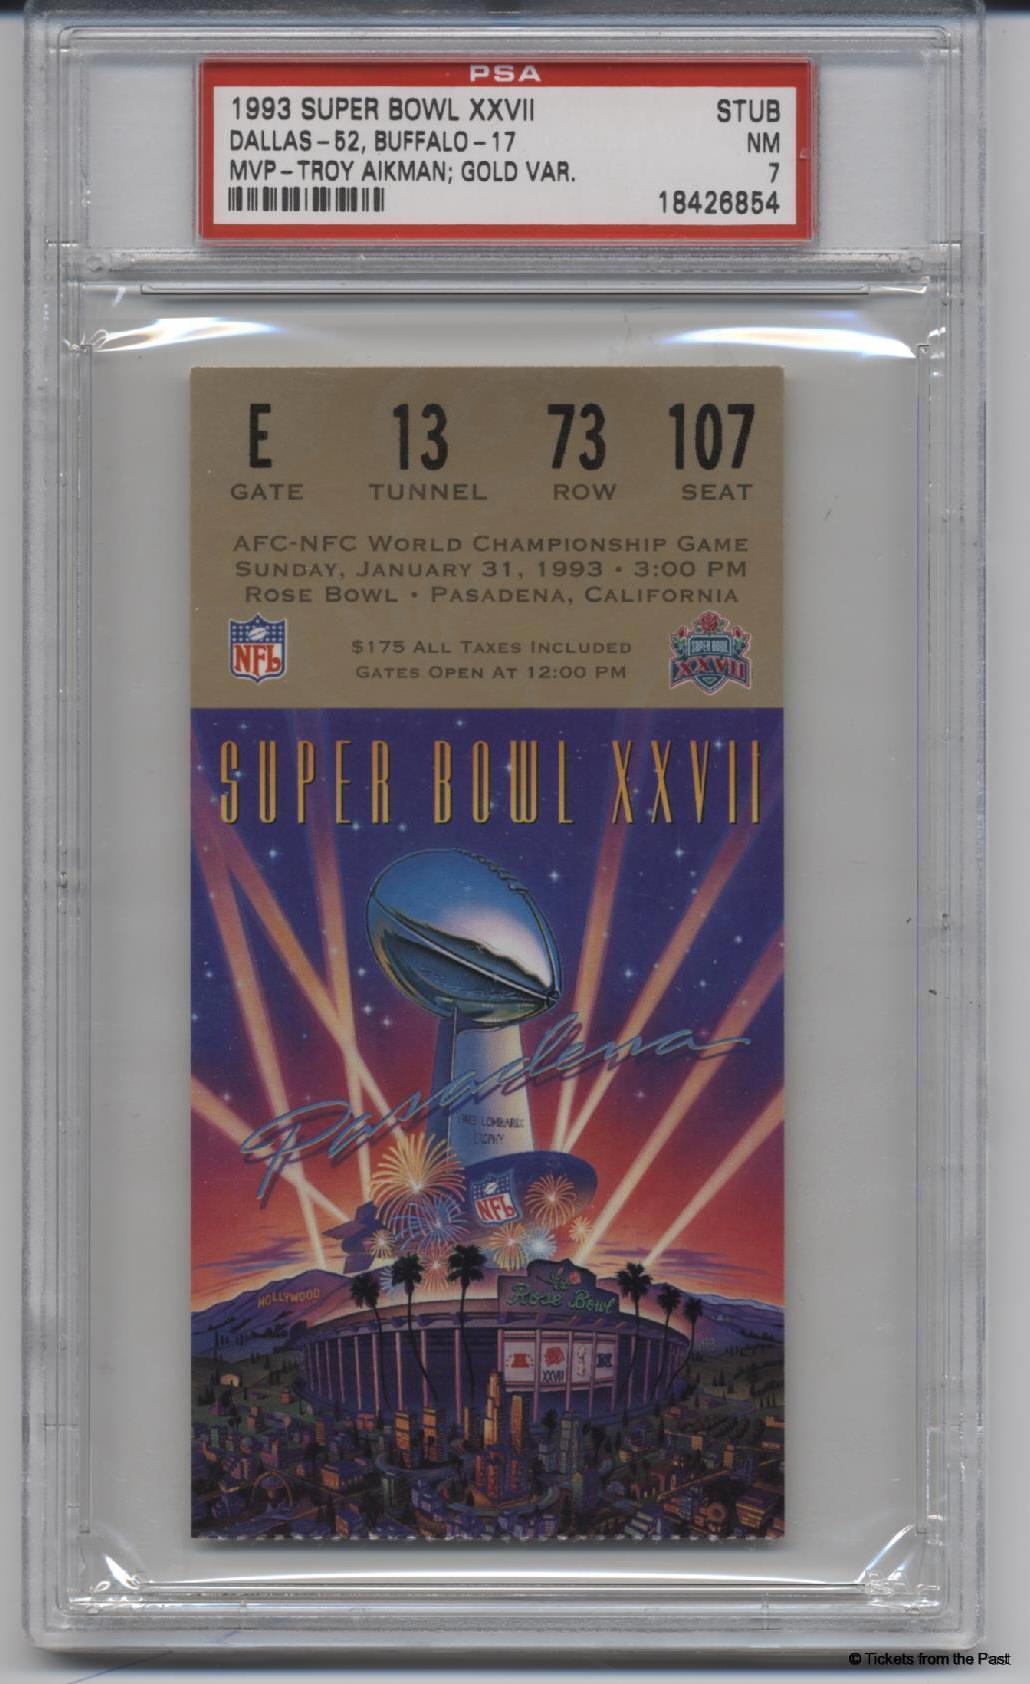 Super Bowl History. Fans can go big for